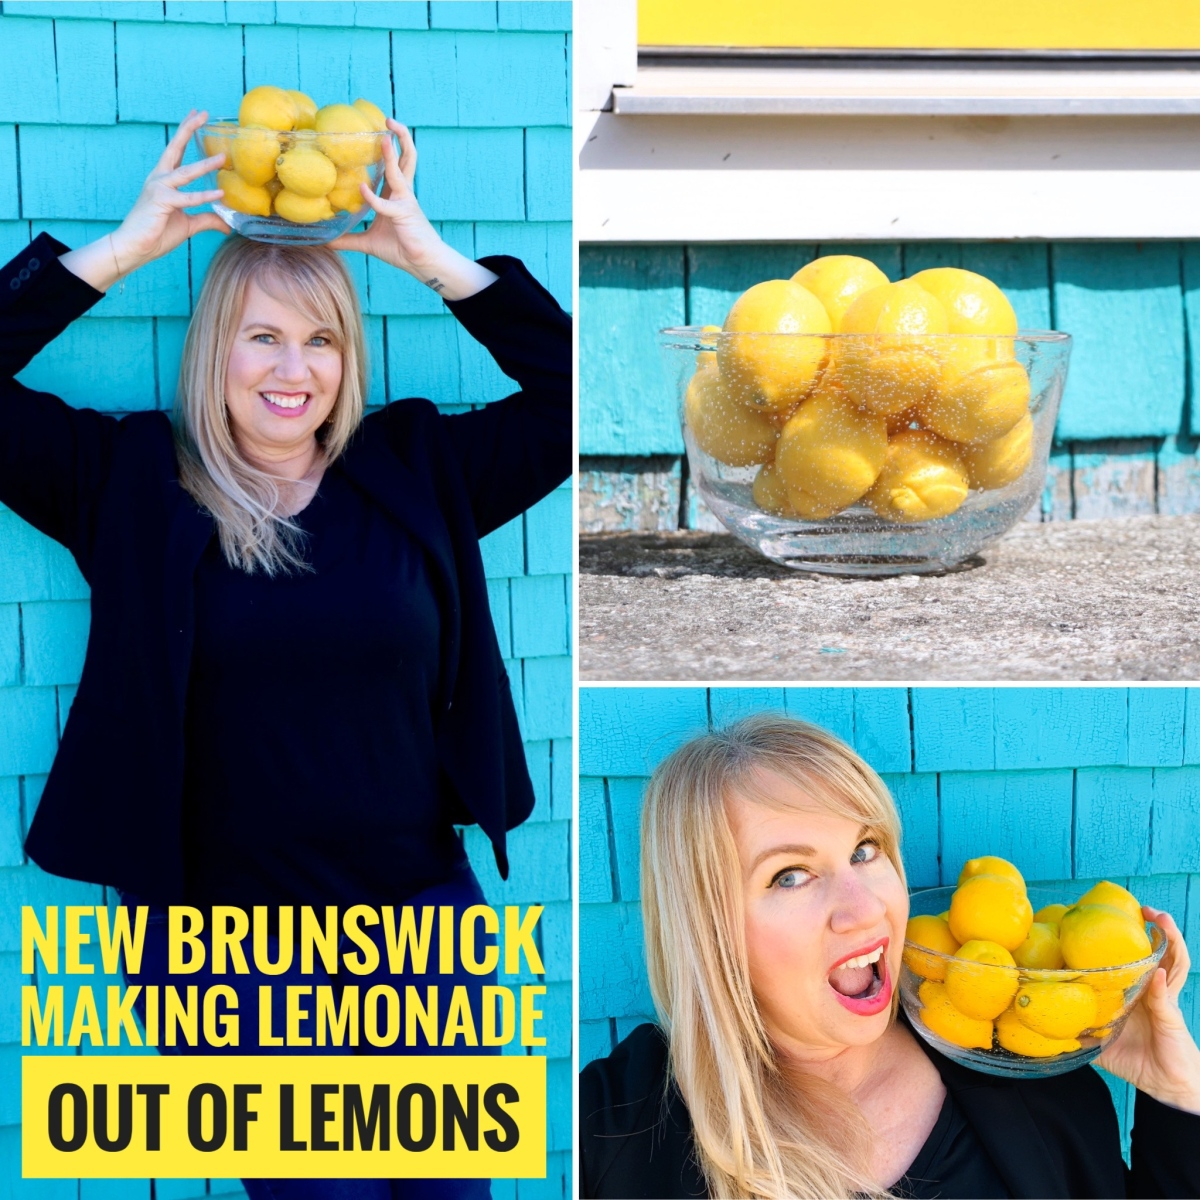 New Brunswick Making Lemonade out of Lemons.